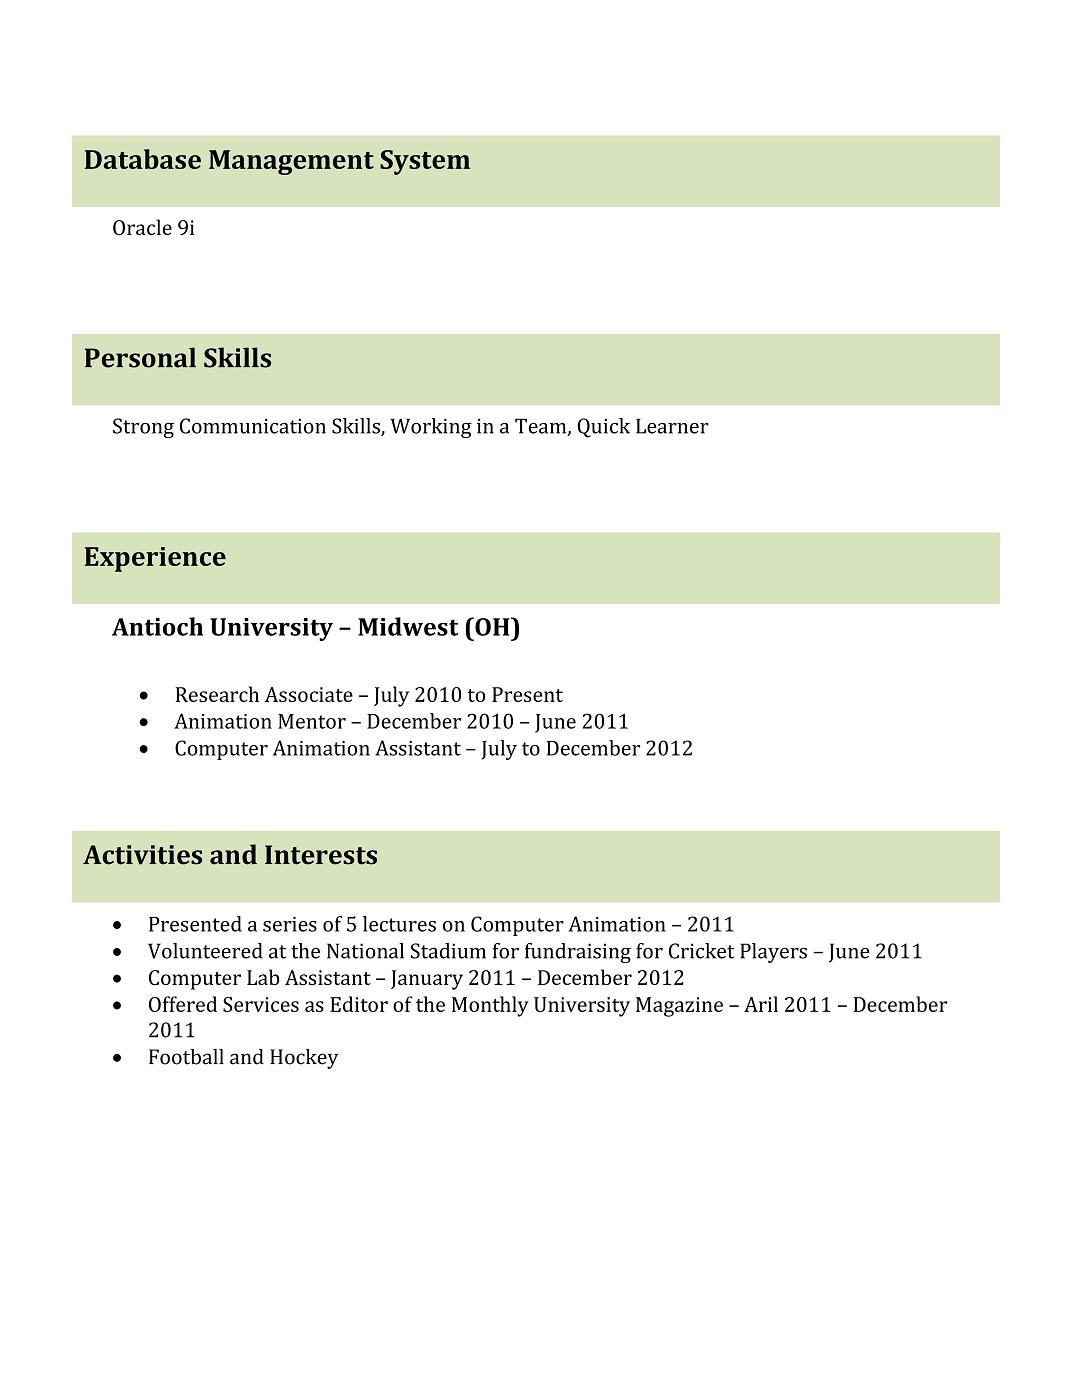 Resume Format For Job Interview For Freshers Best Professional Resume Templates